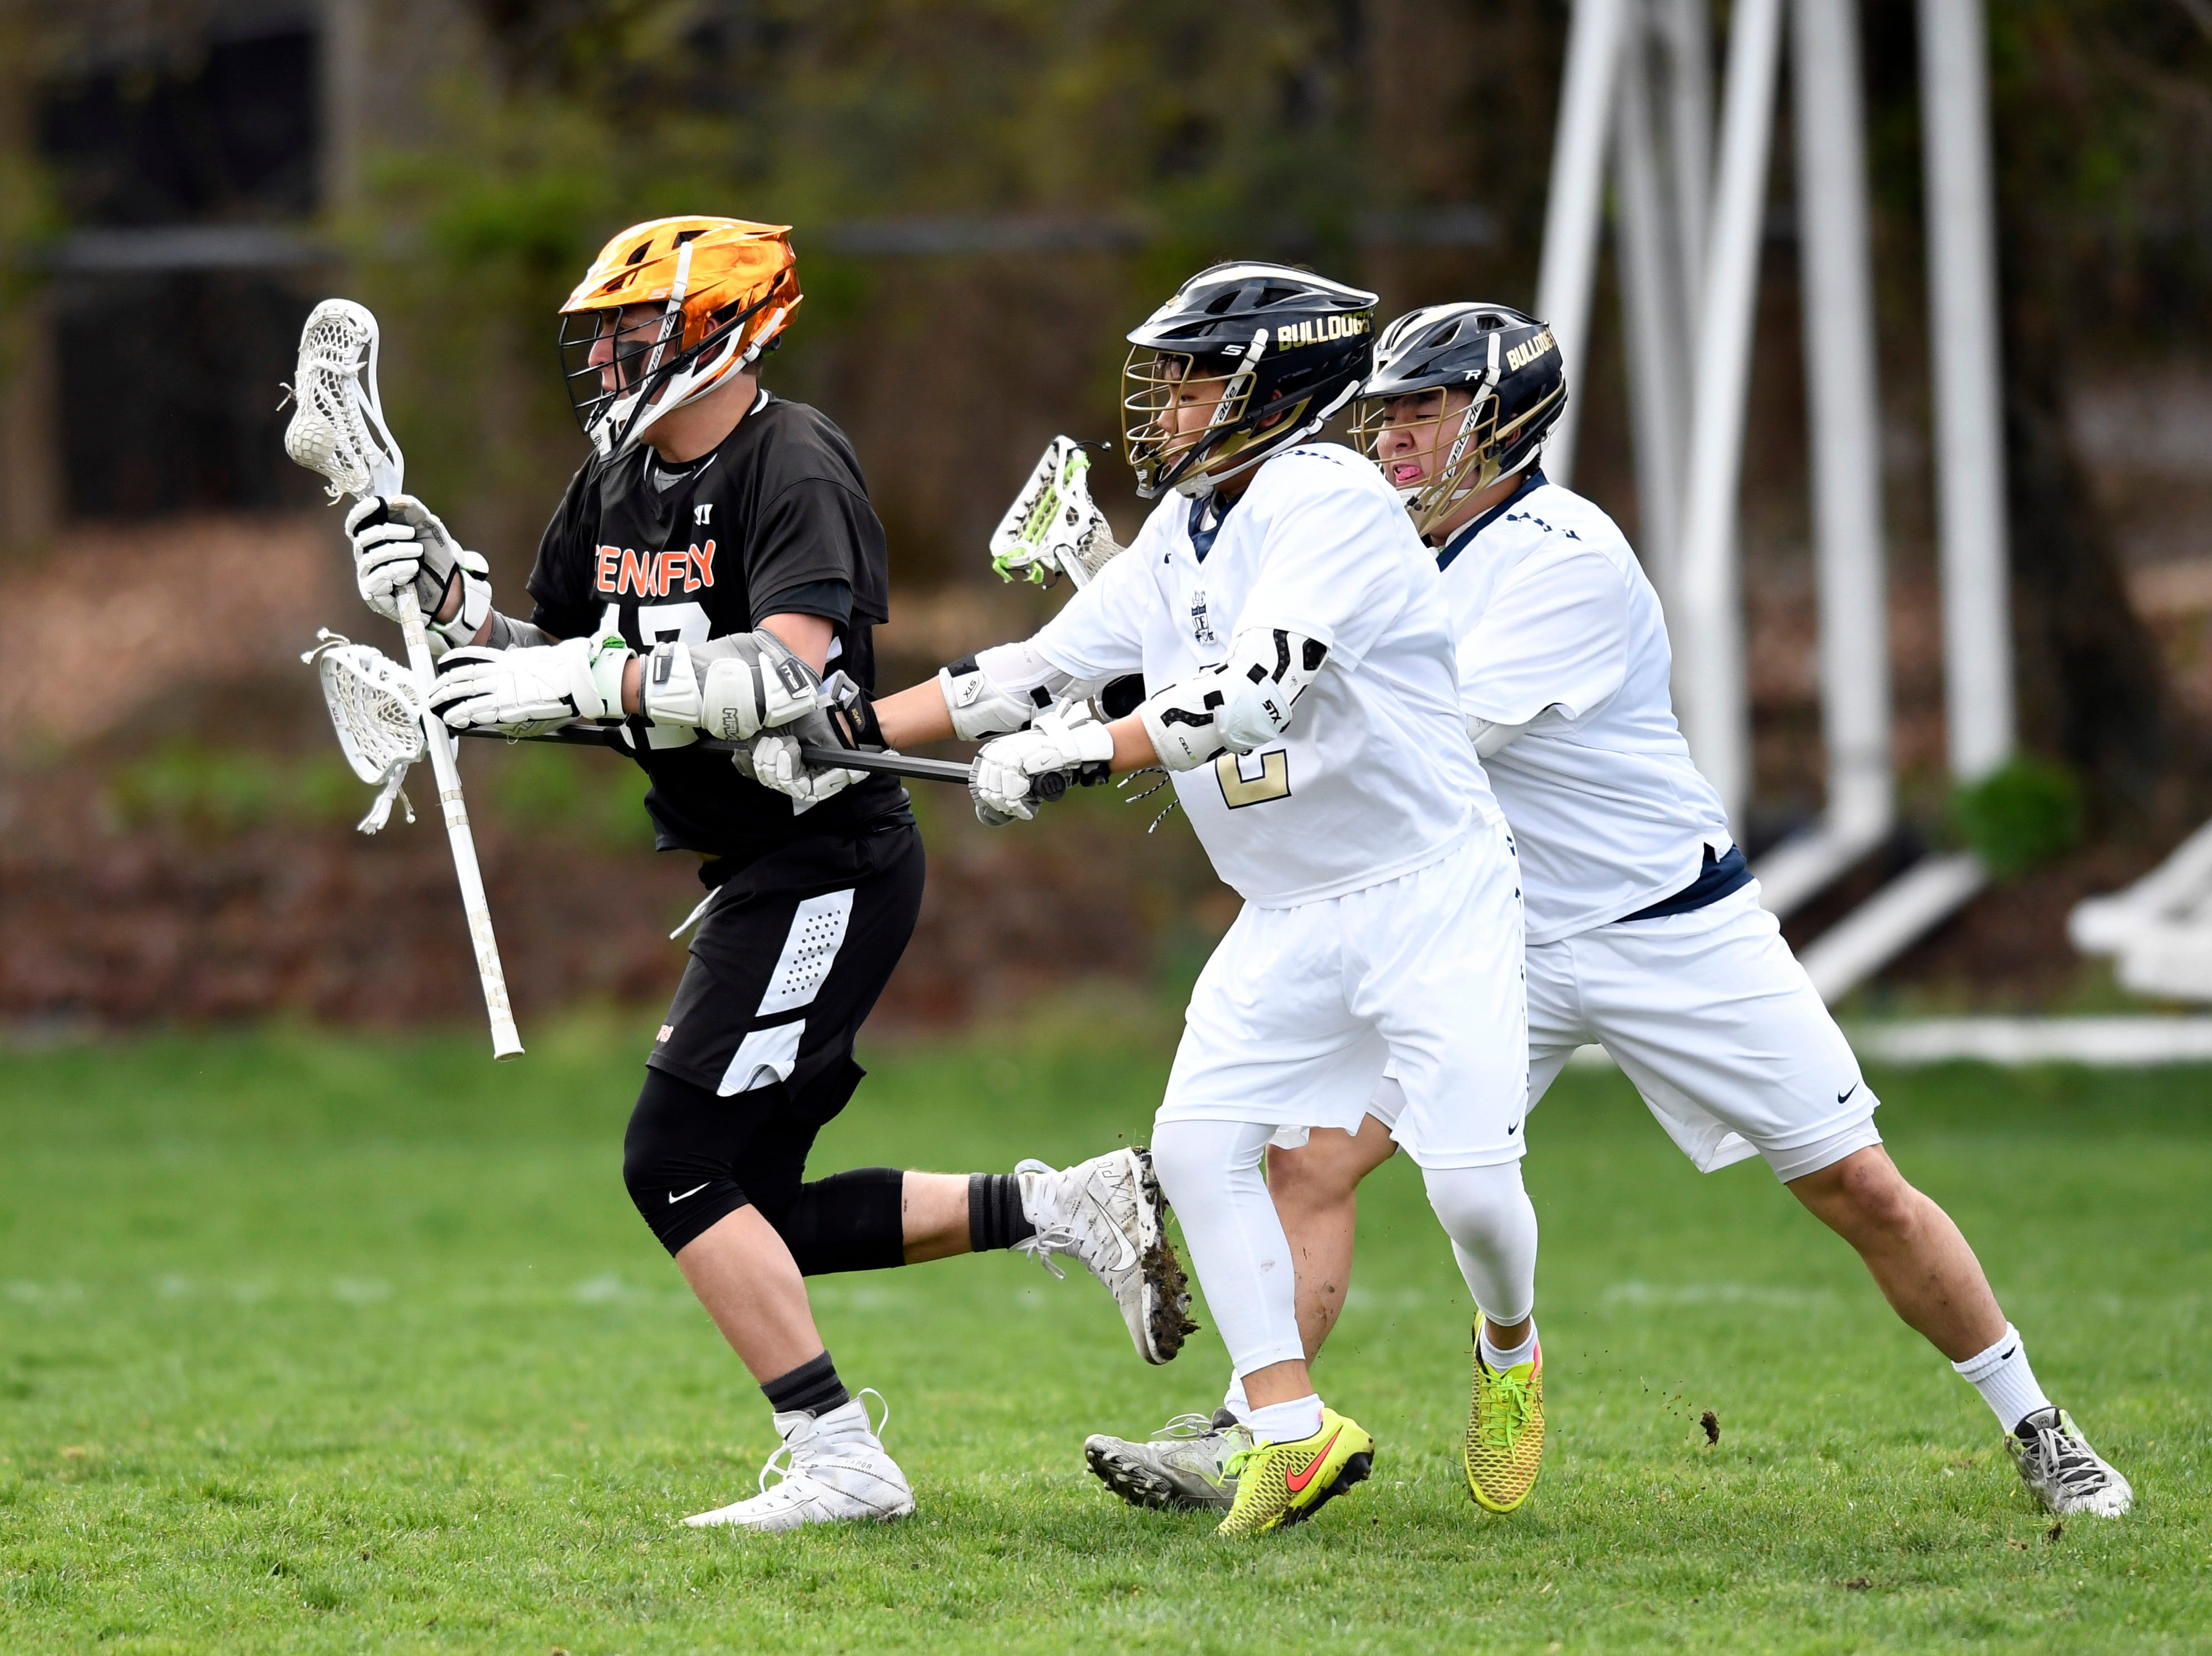 Tenafly's Jeremy Abramowitz, far left, drives to the net with pressure from Dwight-Englewood defenders on Monday, April 15, 2019, in Englewood.